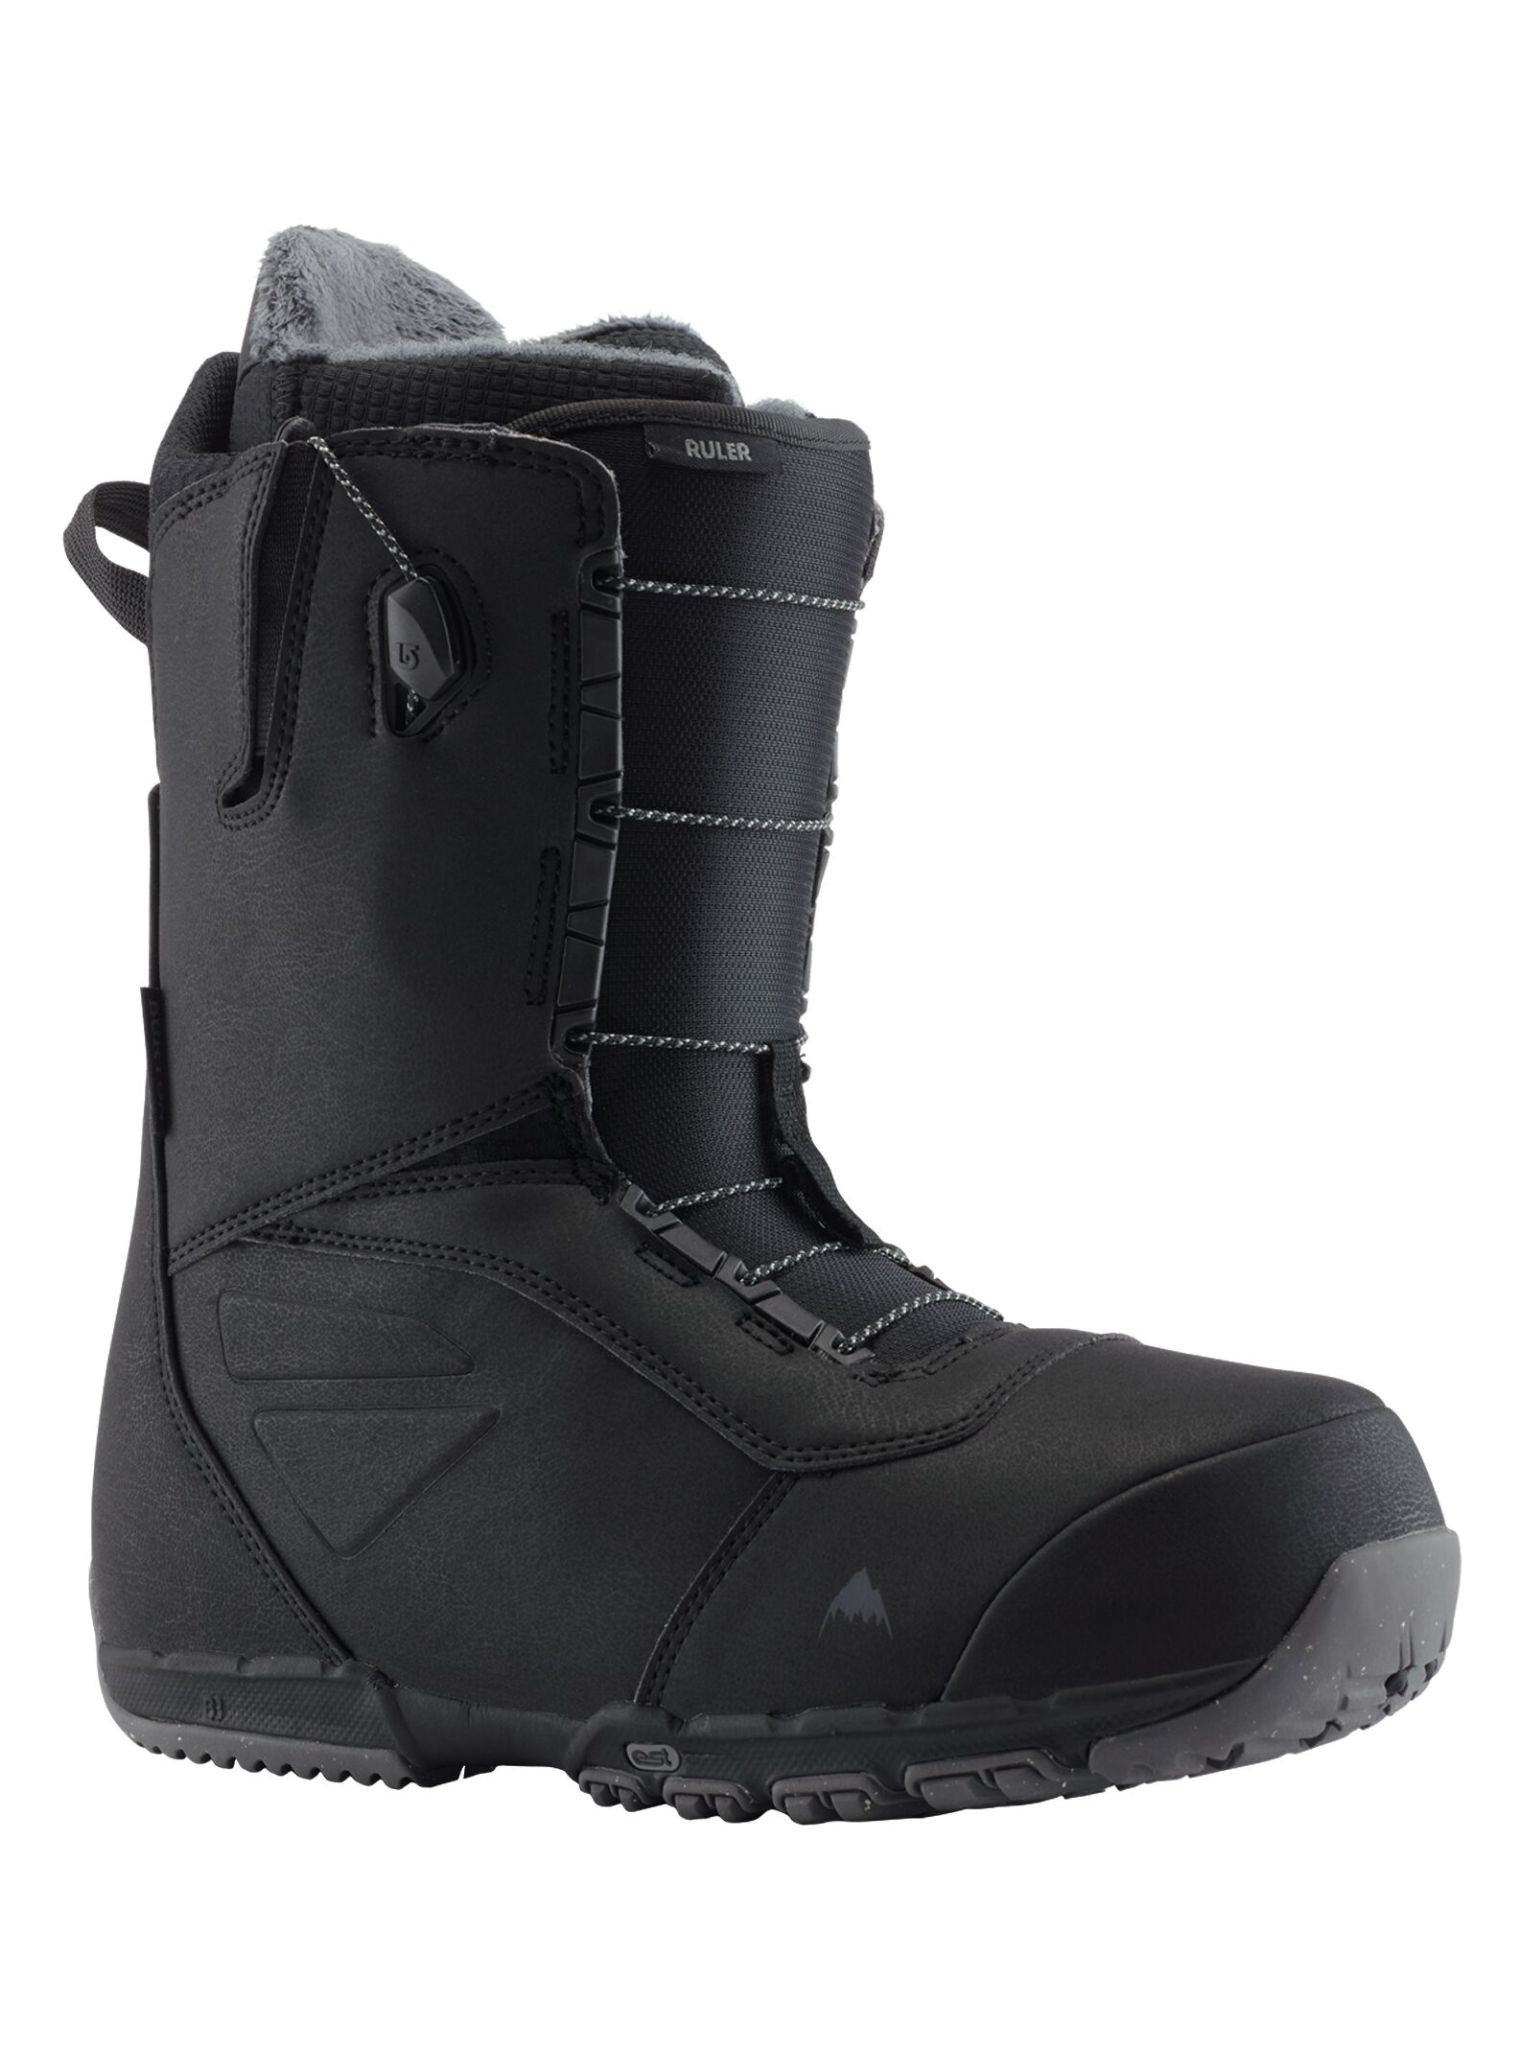 Burton Burton Men's Ruler Wide Snowboard Boot (2021)